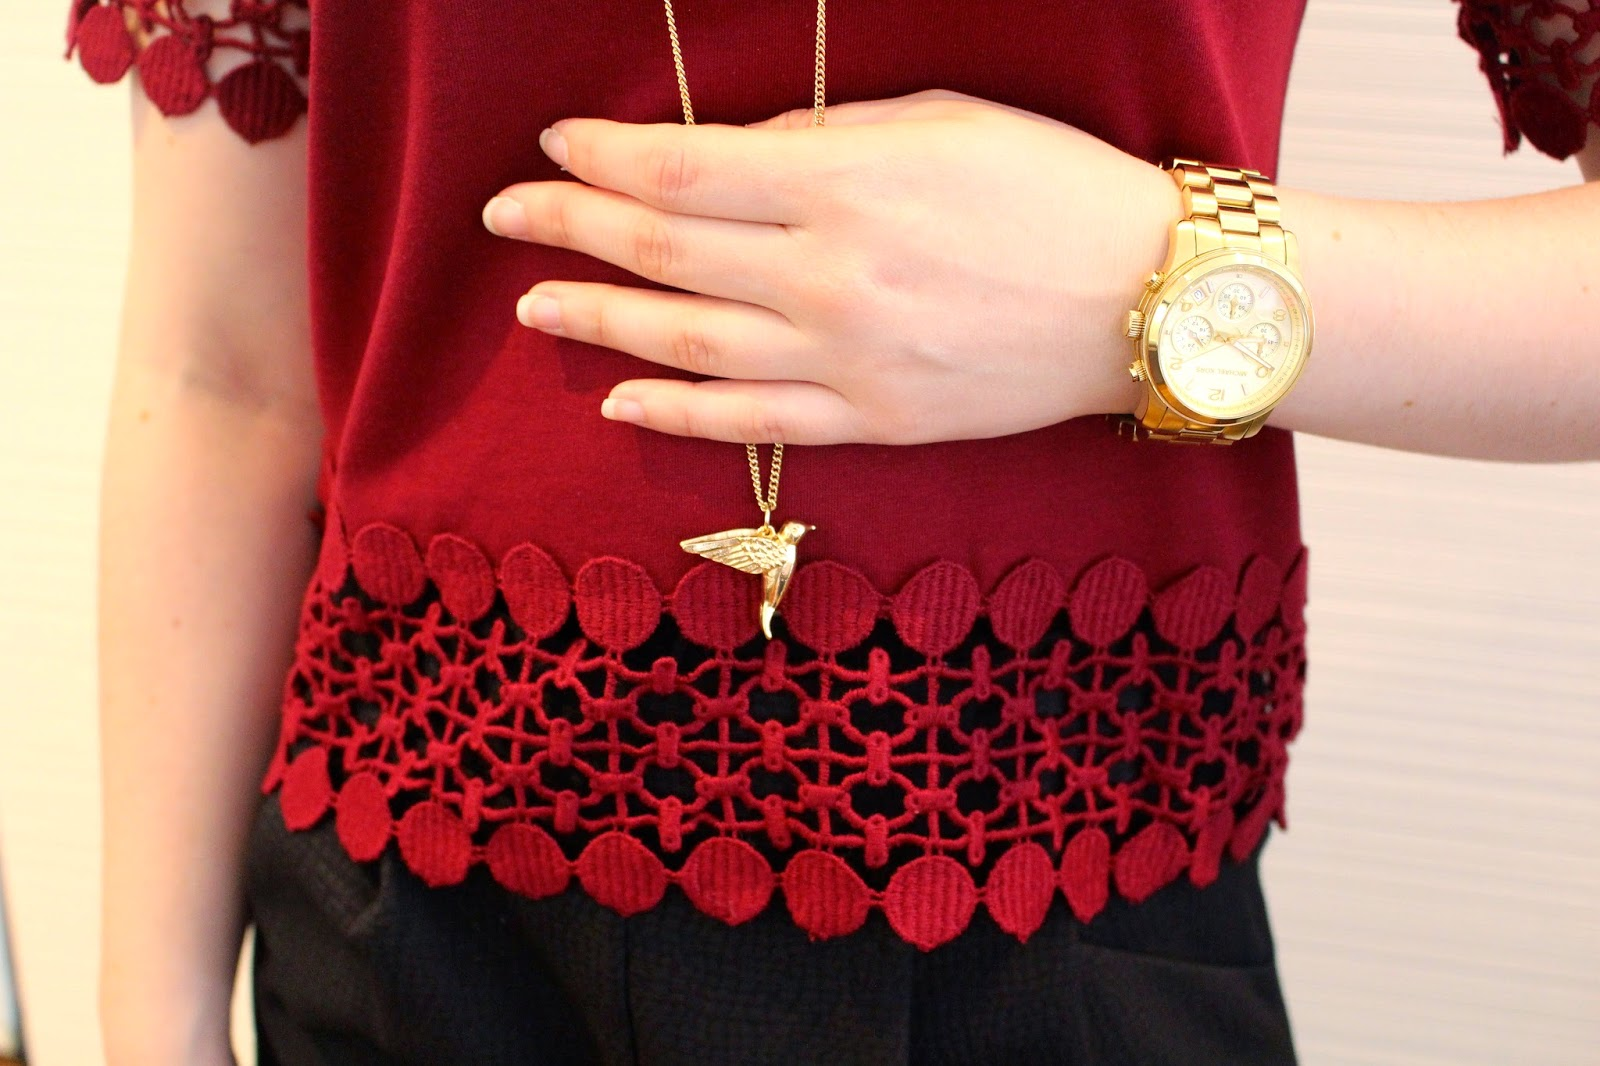 Black high waisted tailored shorts, black opaque tights, maroon crochet t-shirt, black booties, long gold necklace, gold michael kors watch, summer outfit, spring outfit, autumn outfit, fall outfit, winter outfit, everyday outfit, college outfit, uni outfit, short girl outfit